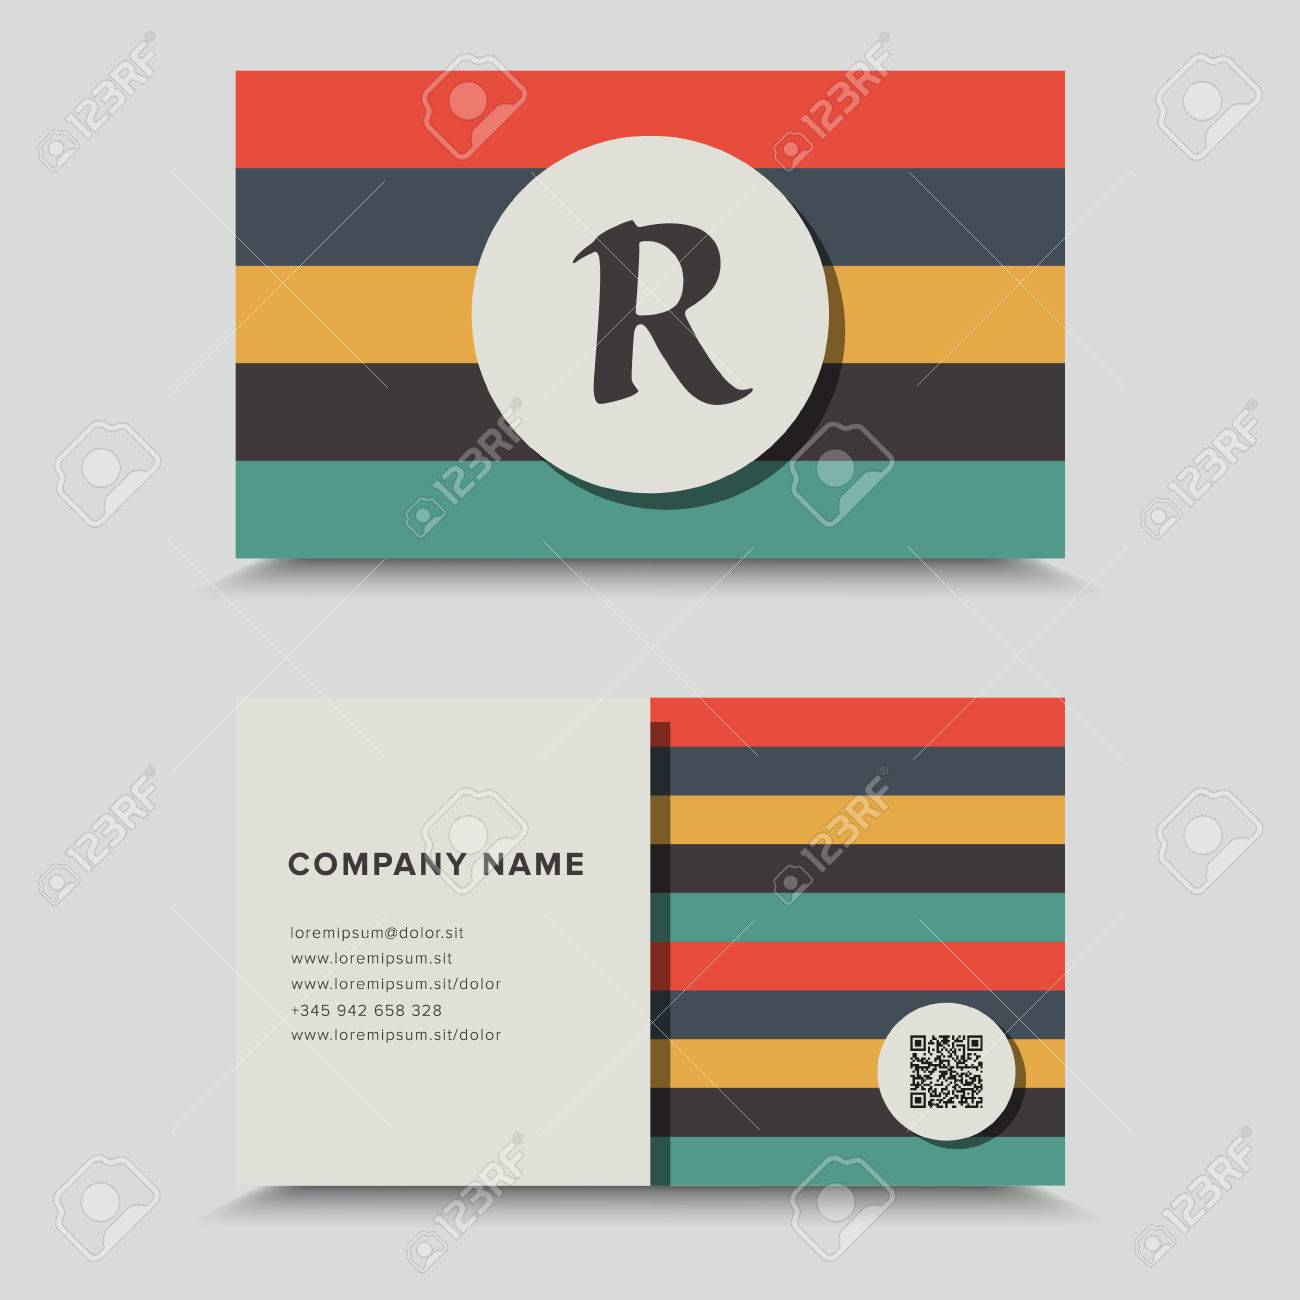 Visit card with qr code business card design royalty free cliparts vector visit card with qr code business card design colourmoves